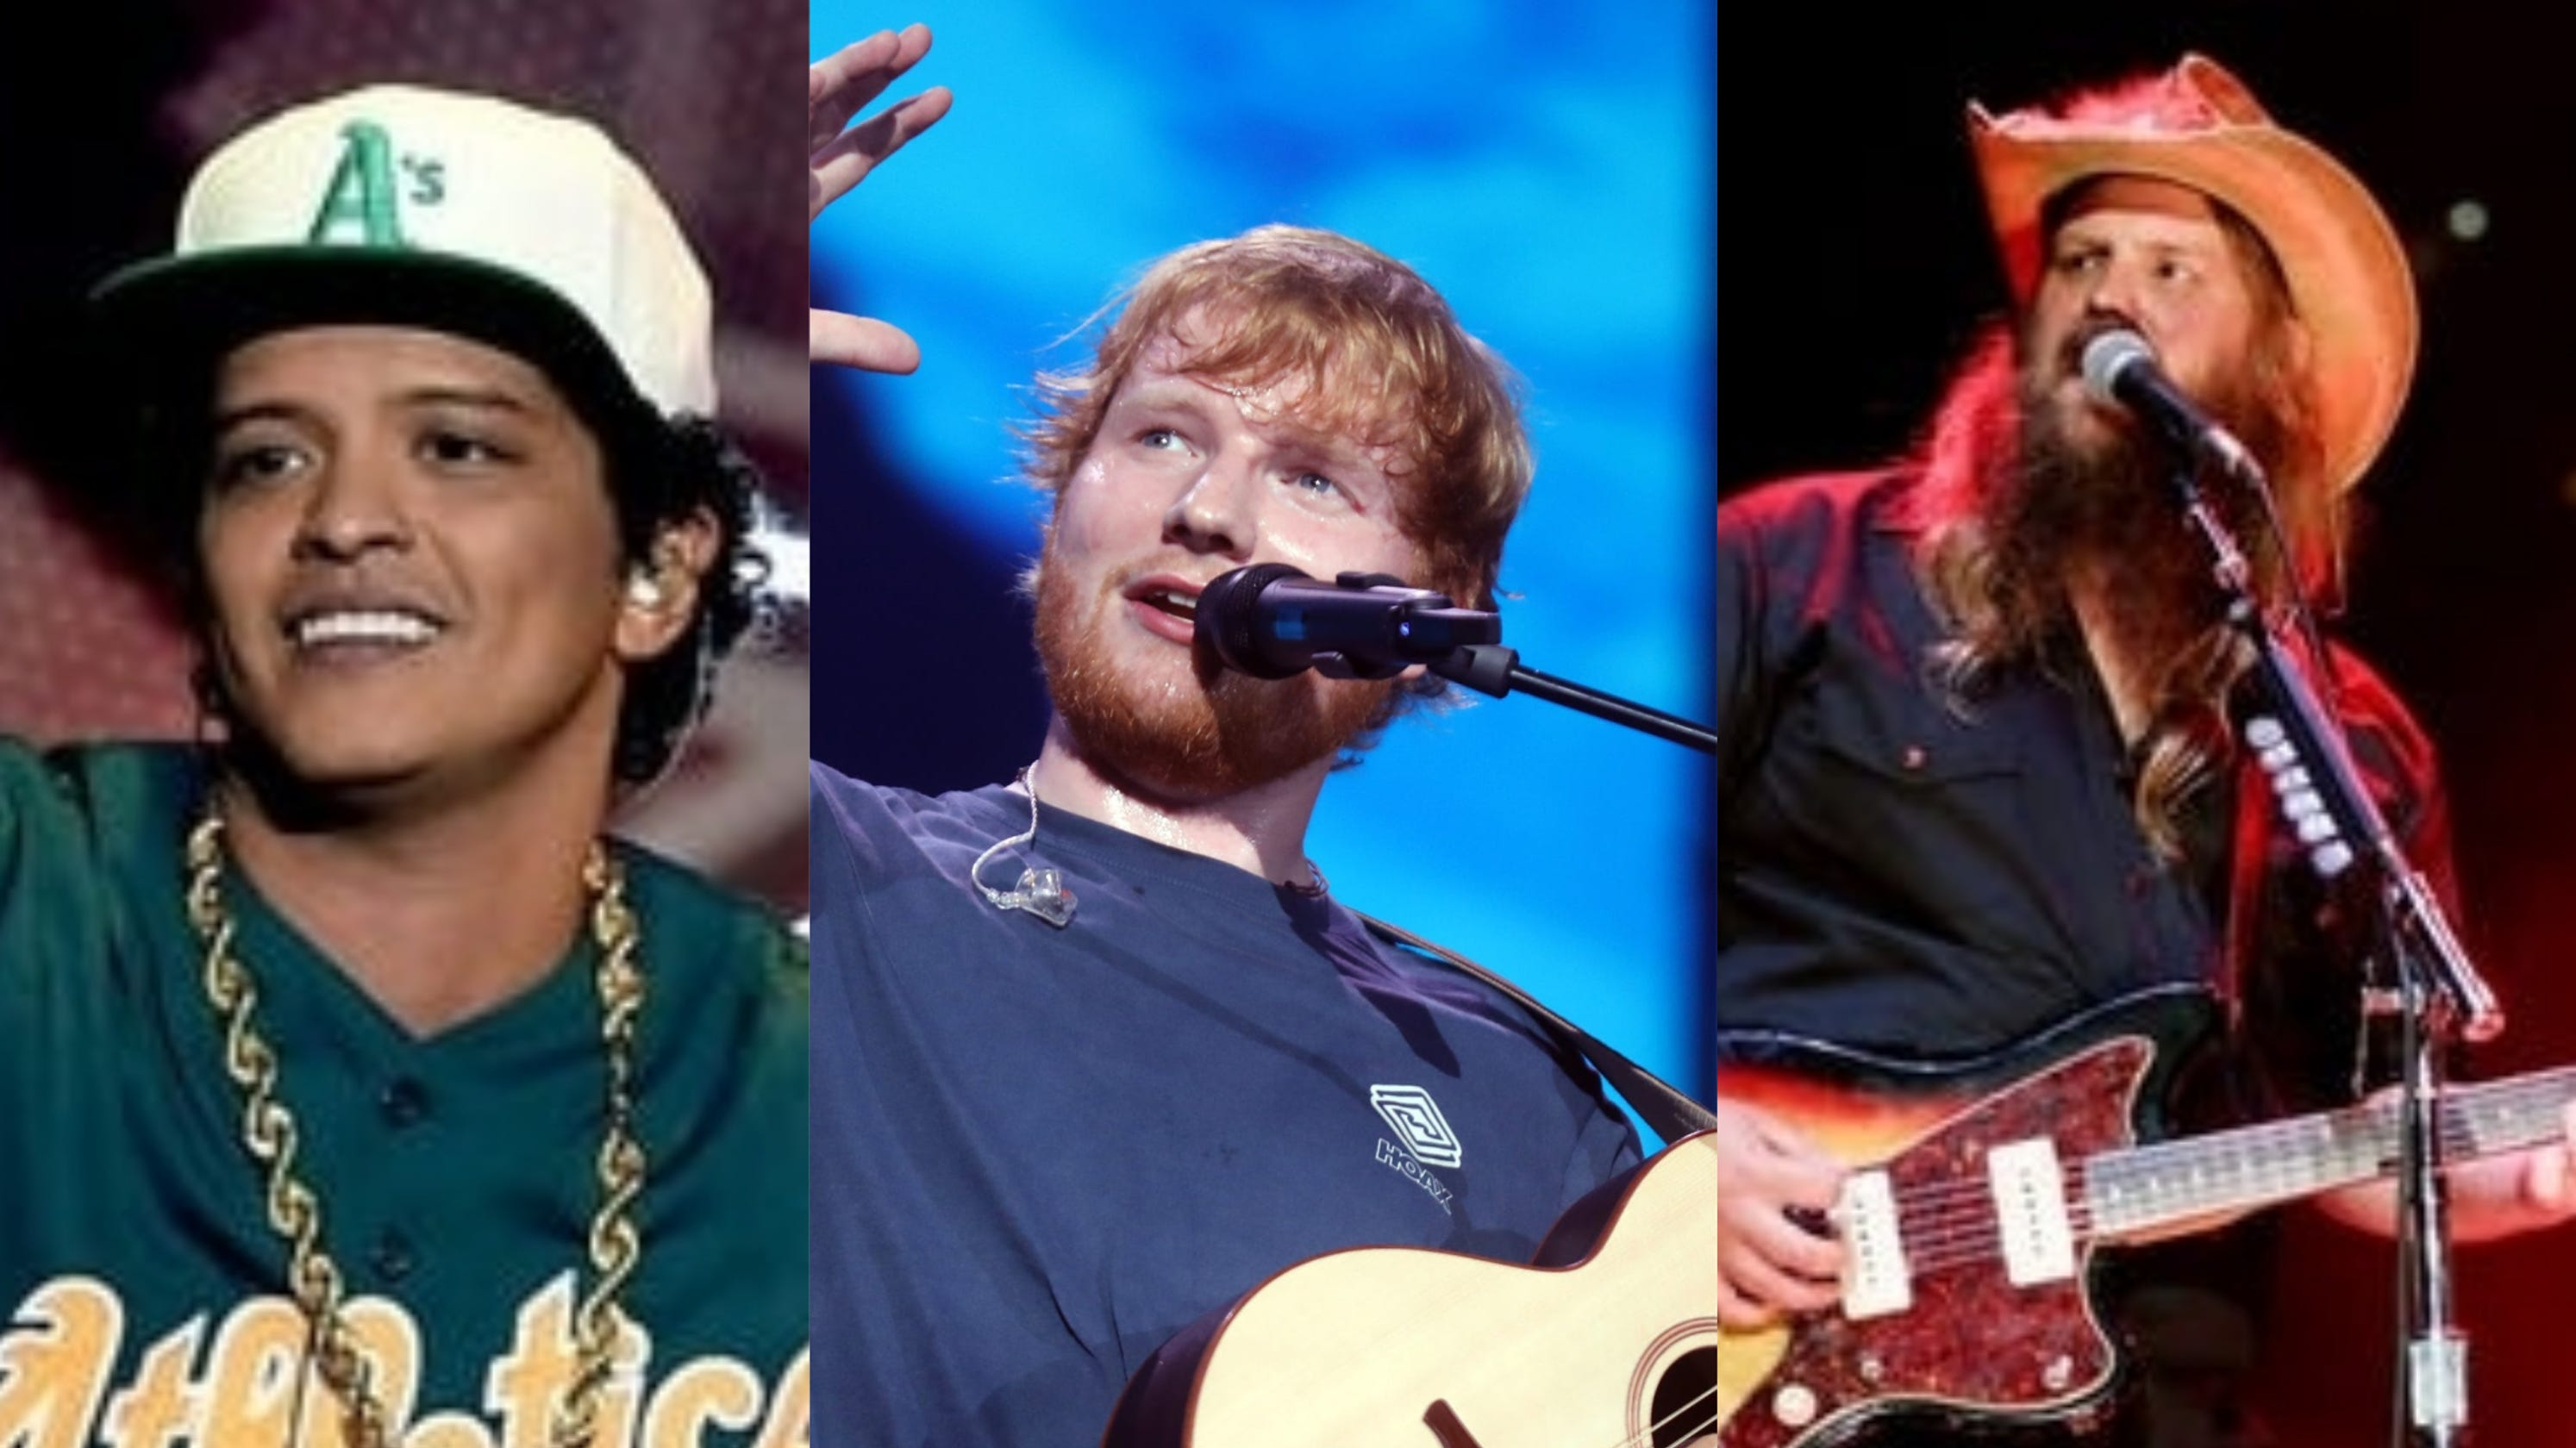 Blow a trio song of Chris Stapleton, Ed Sheeran and Bruno Mars